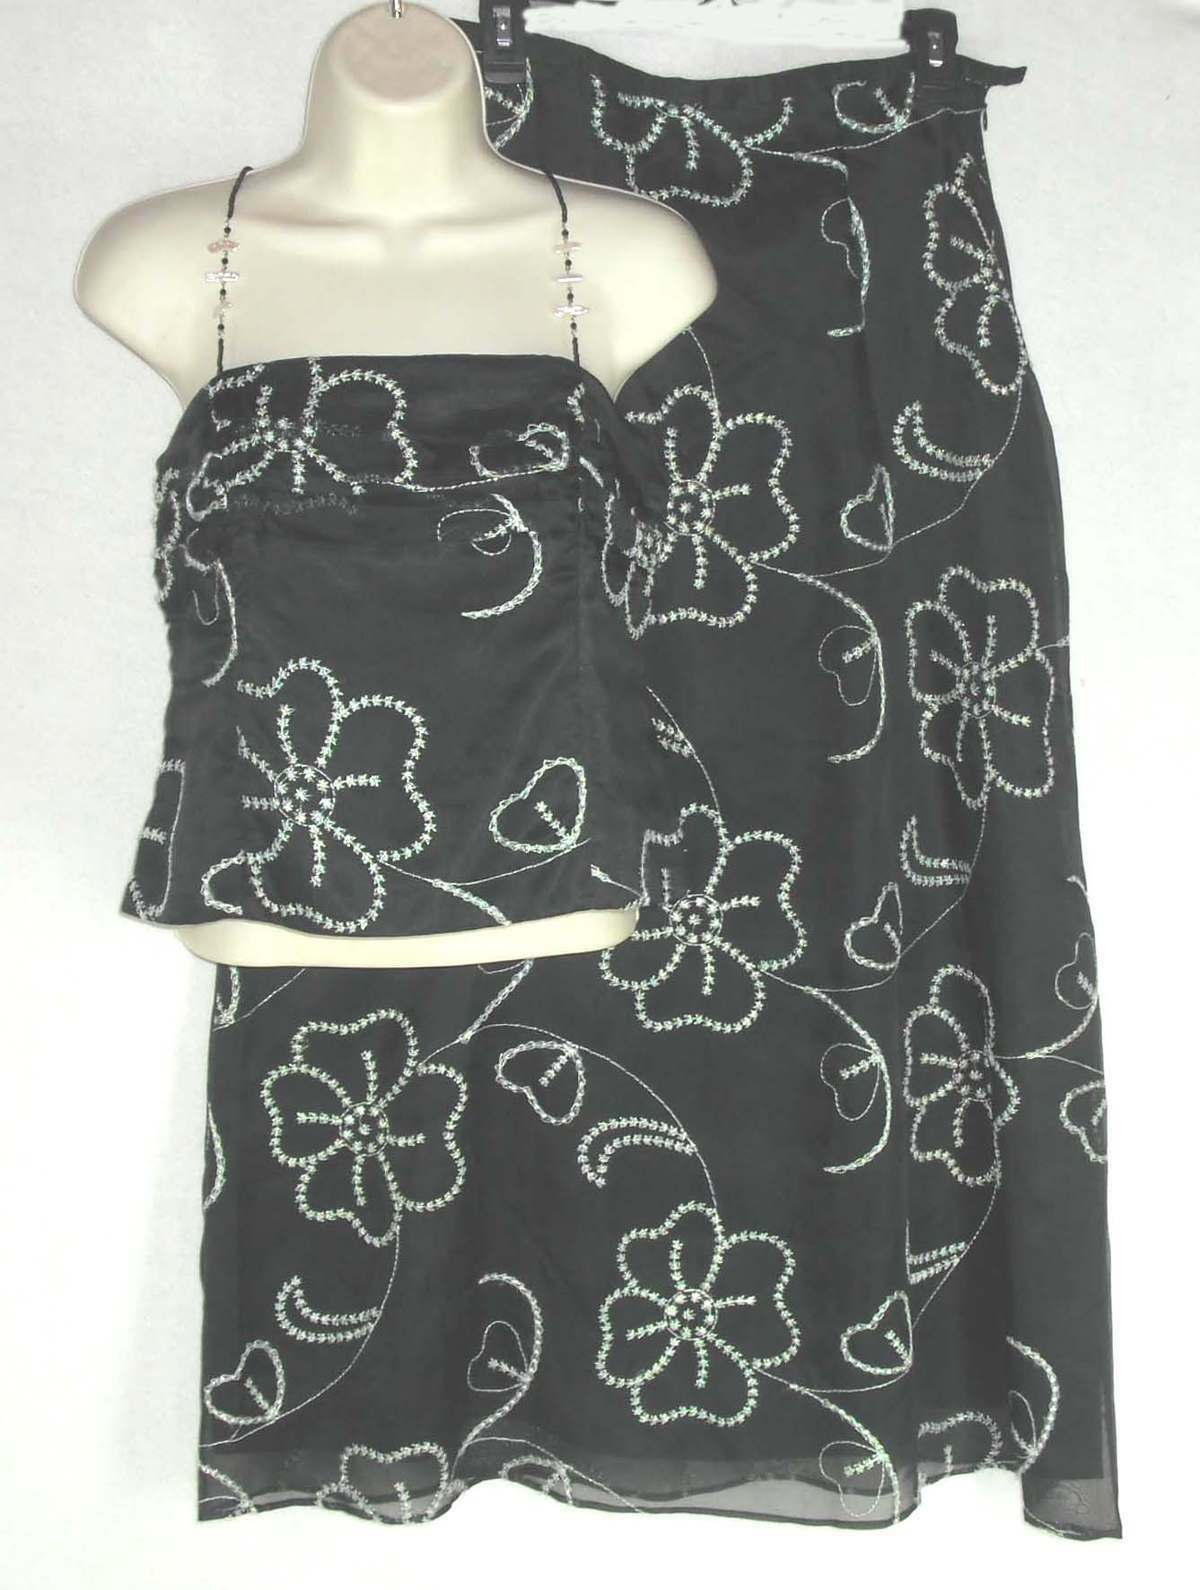 JULIANA COLLEZIONE dress 2 pc top skirt NEW sz 6 NWT100% Silk Embroidered Floral